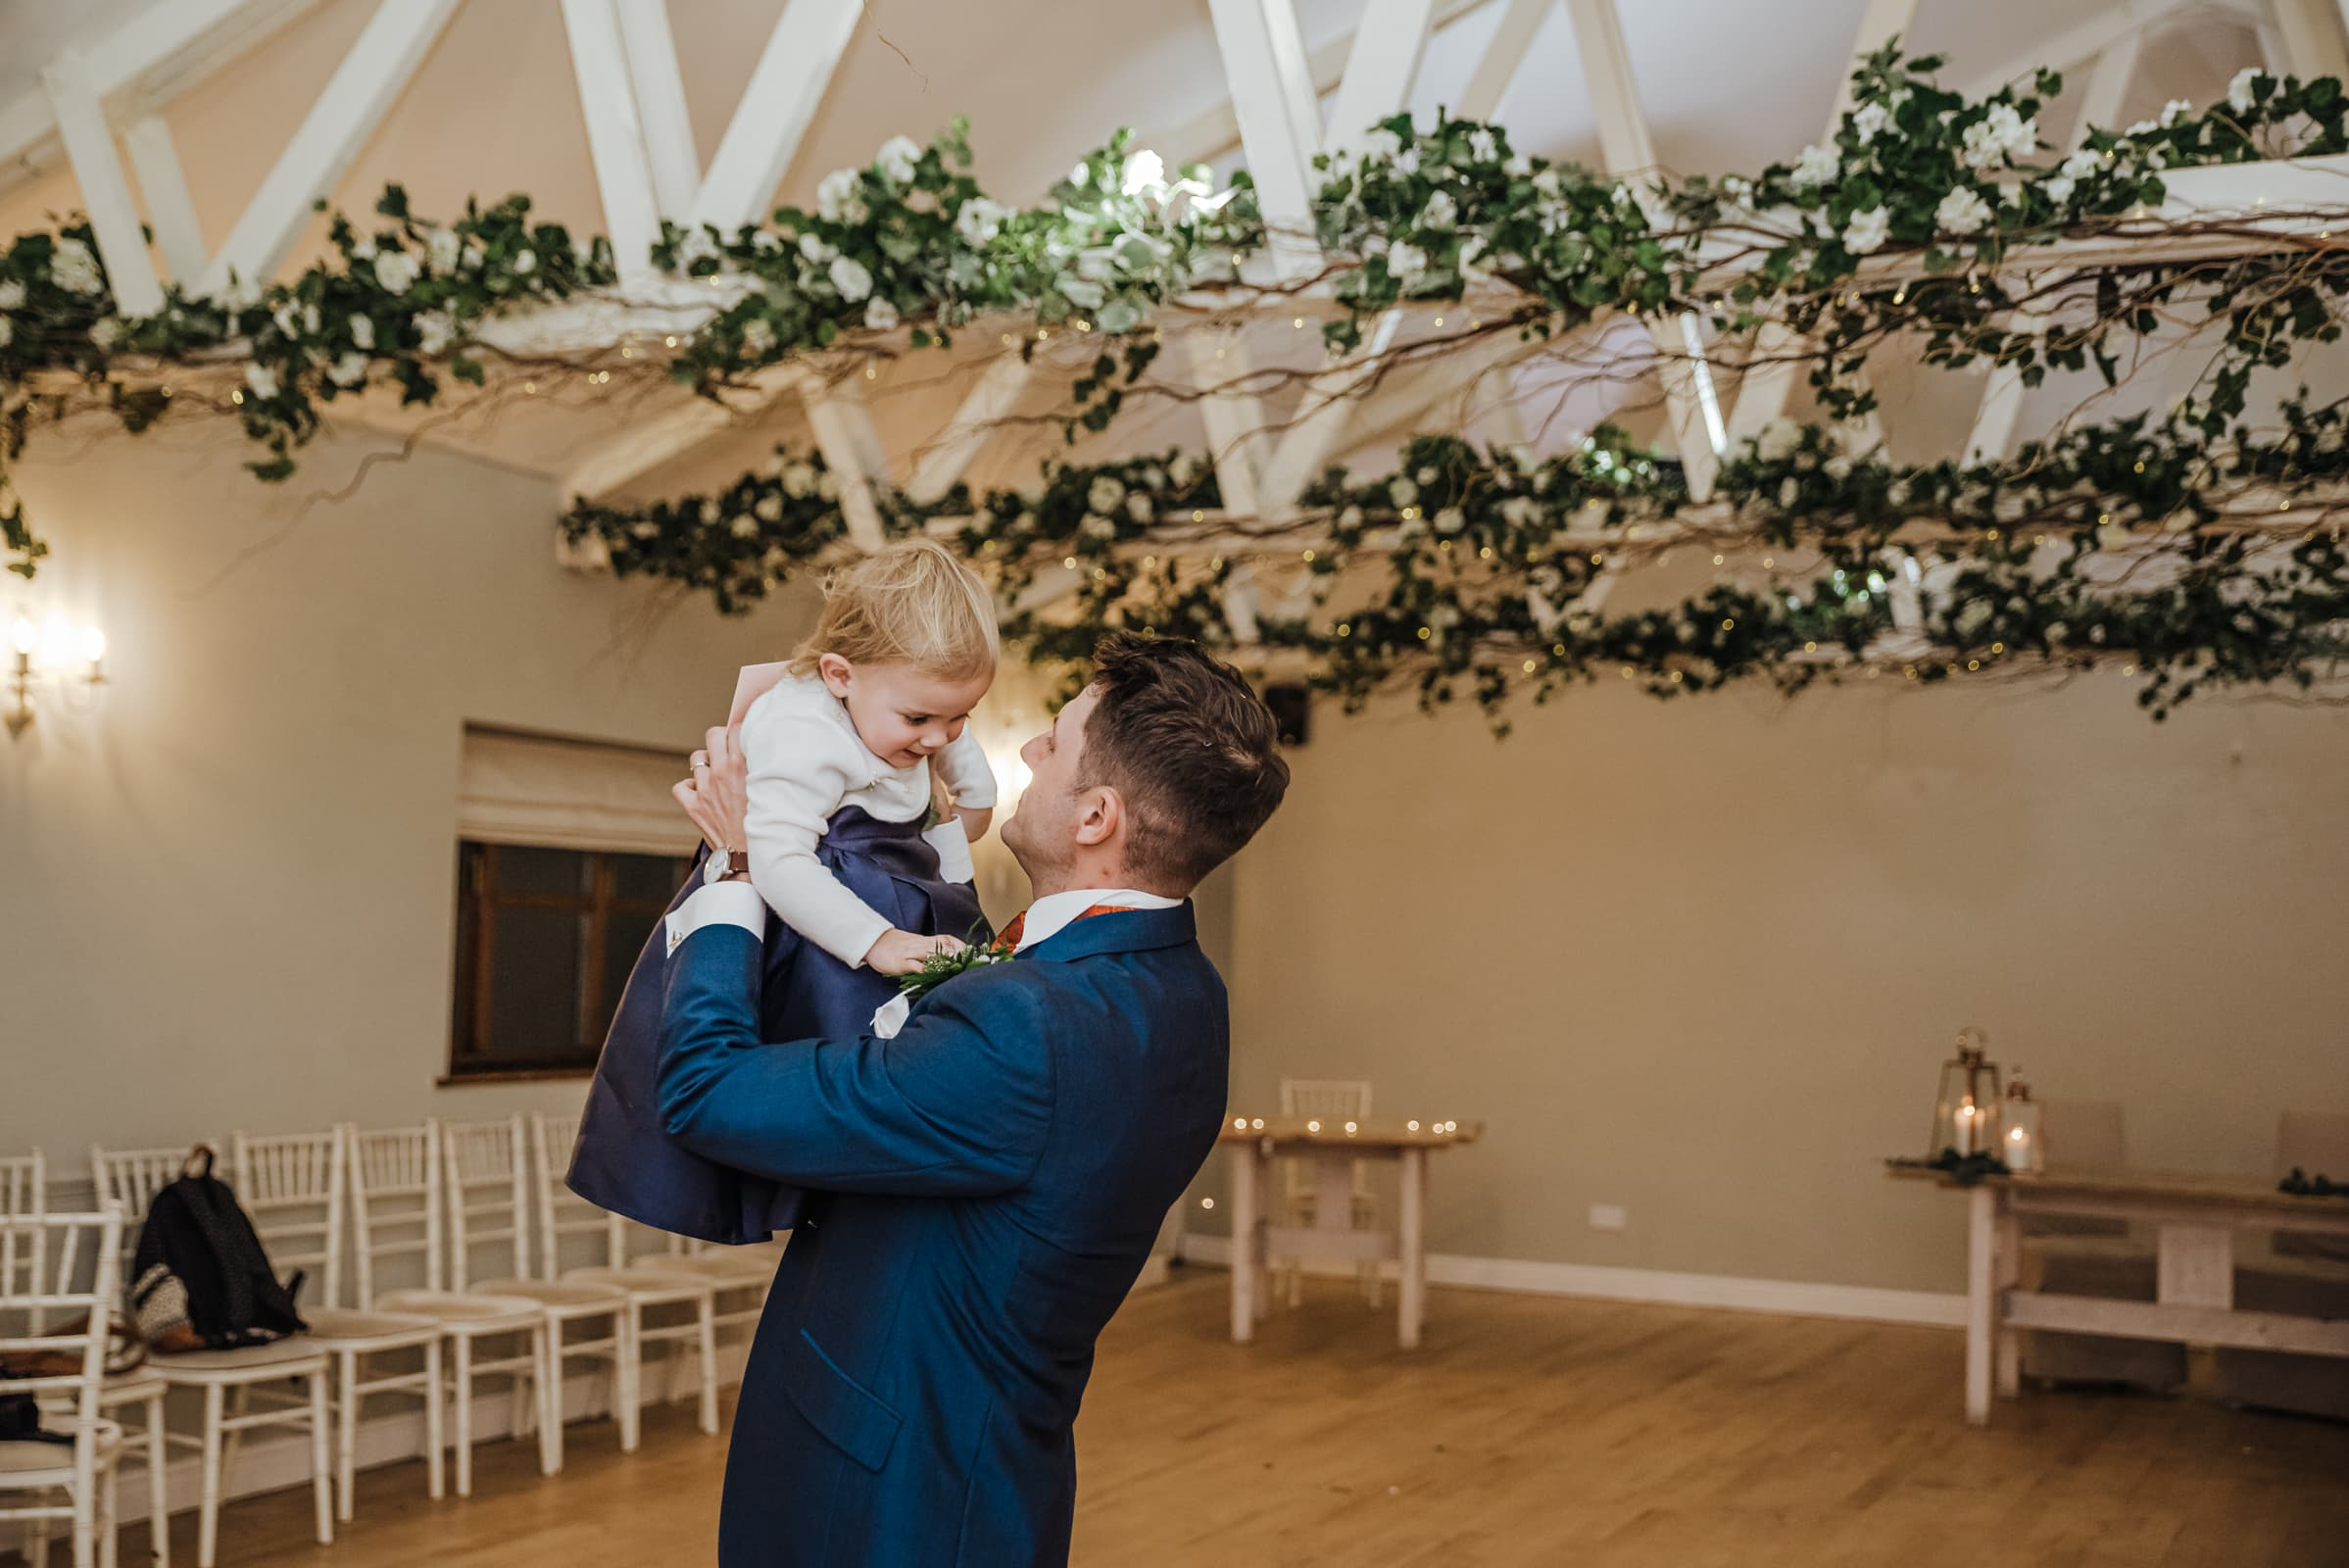 Groom and his daughter after the wedding ceremony Roshni photography The Milling Barn, Bluntswood Hall, Throcking wedding photographer